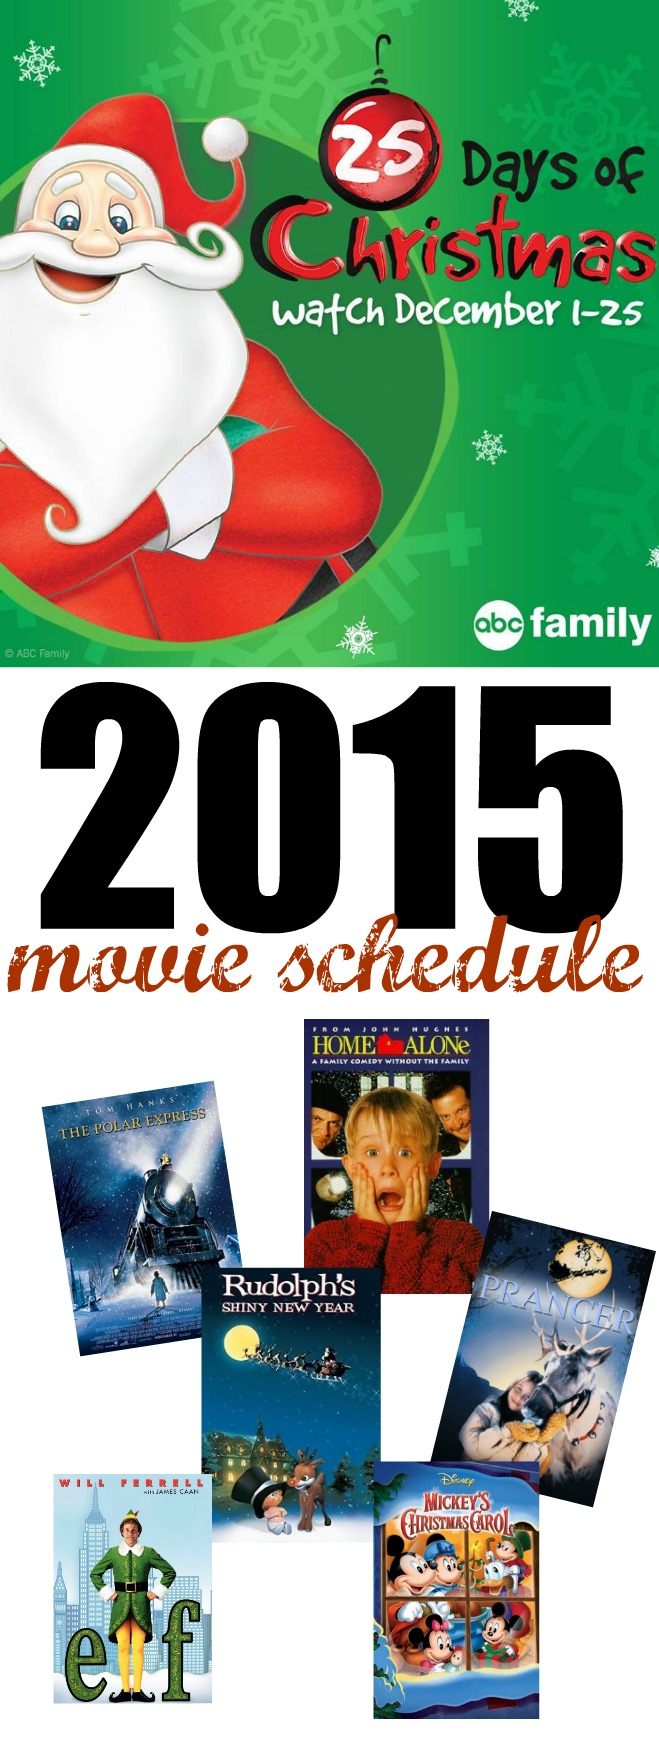 Christmas Calendar Movie : Abc days of christmas movie schedule shesaved